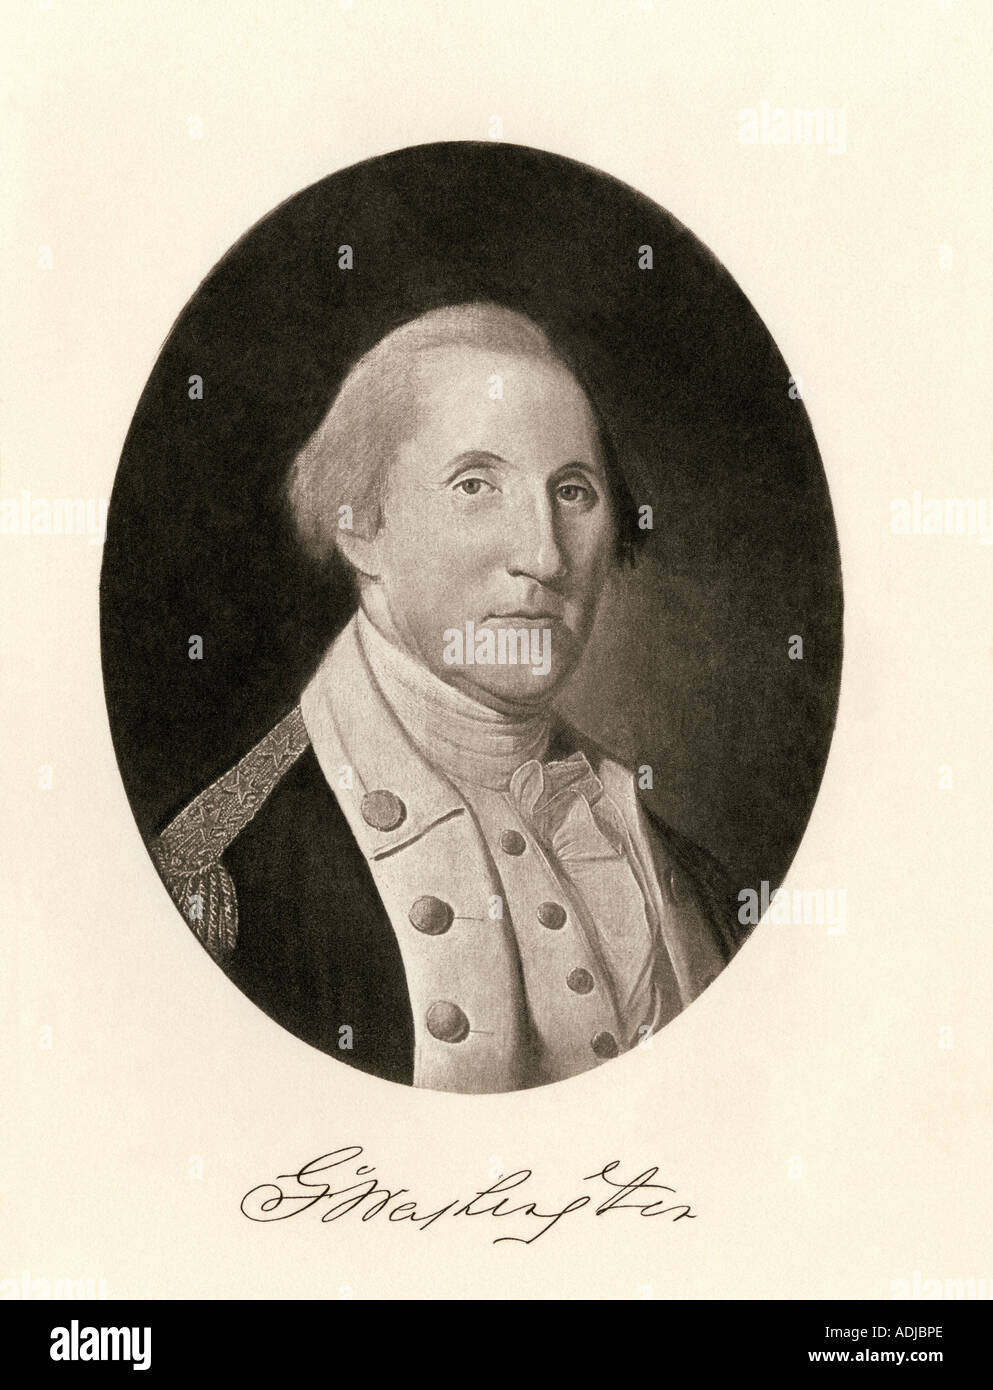 General George Washington with signature - Stock Image